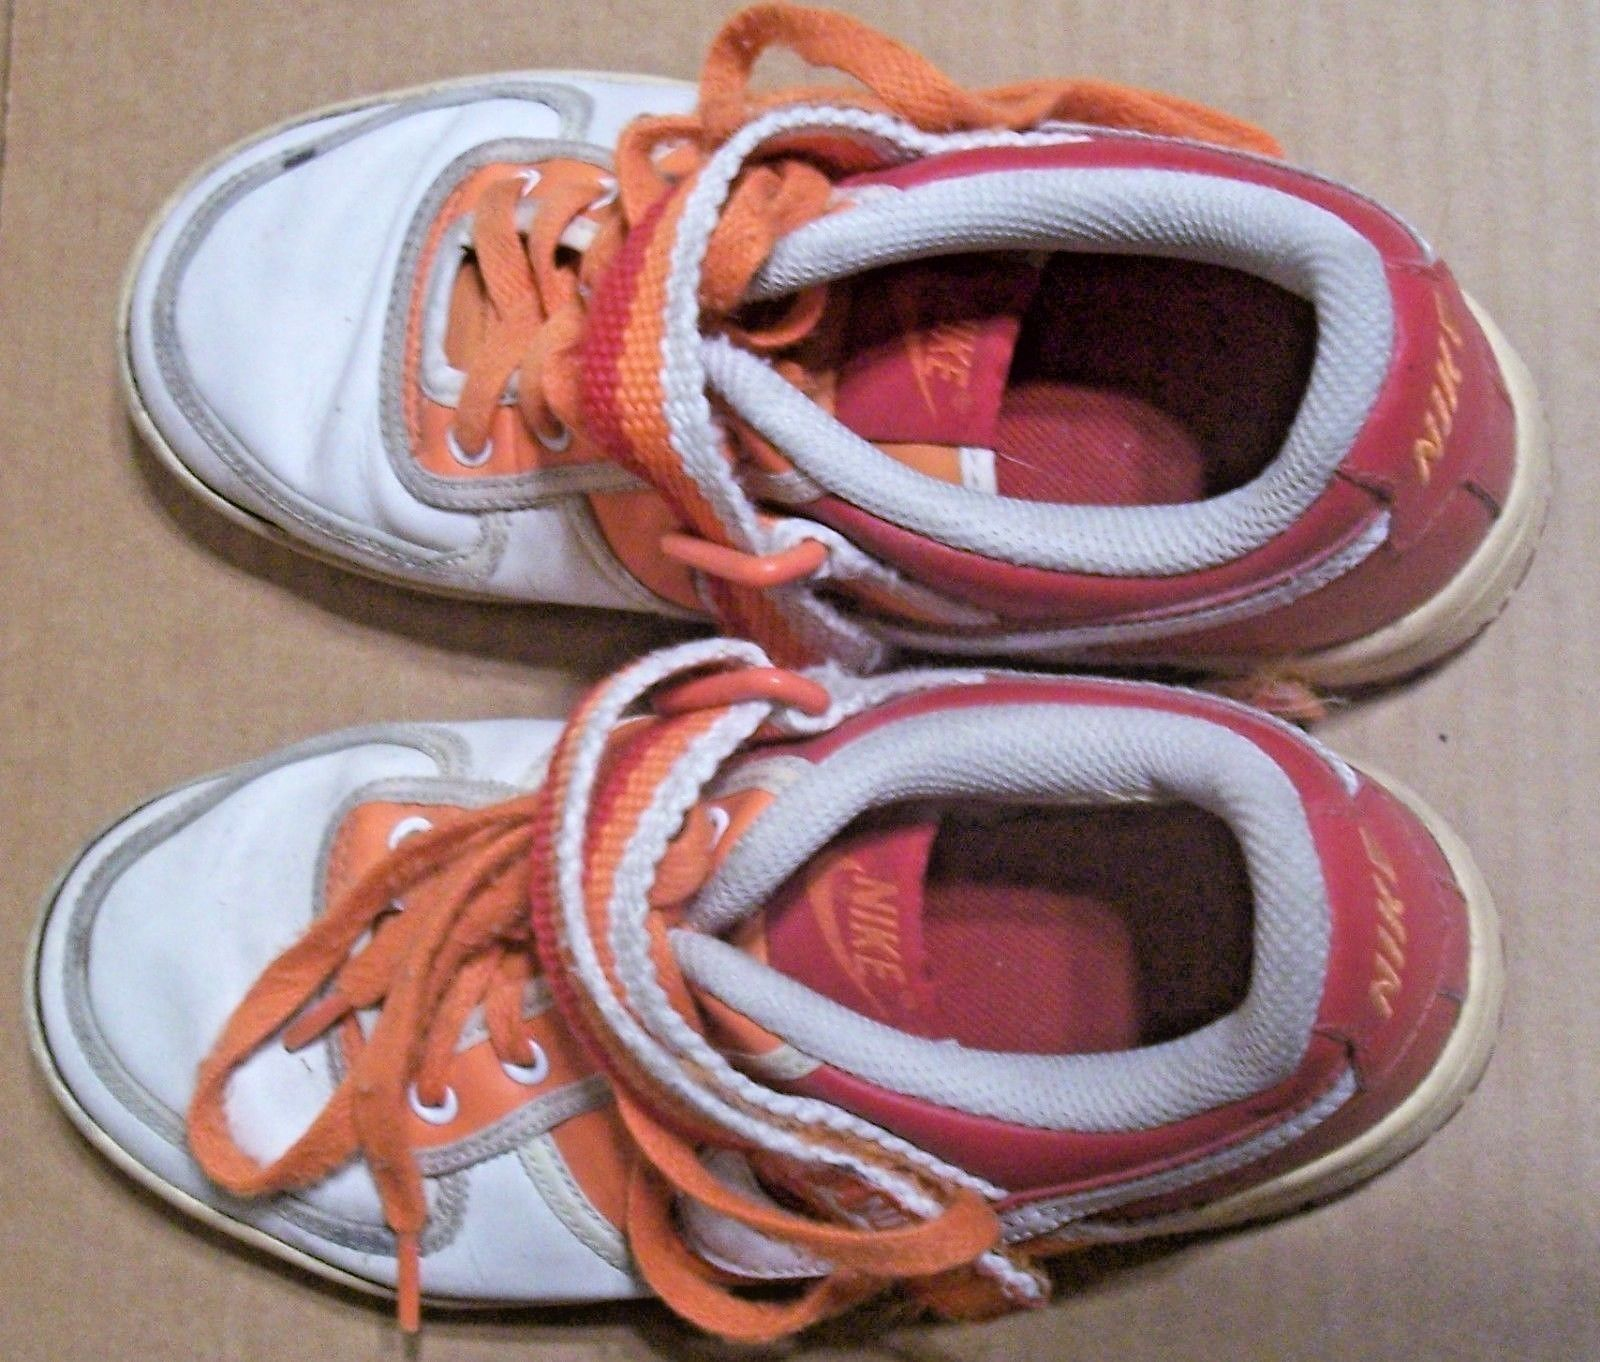 Nike Sneakers Size Orange and White 4 Y Youth Boys Girls